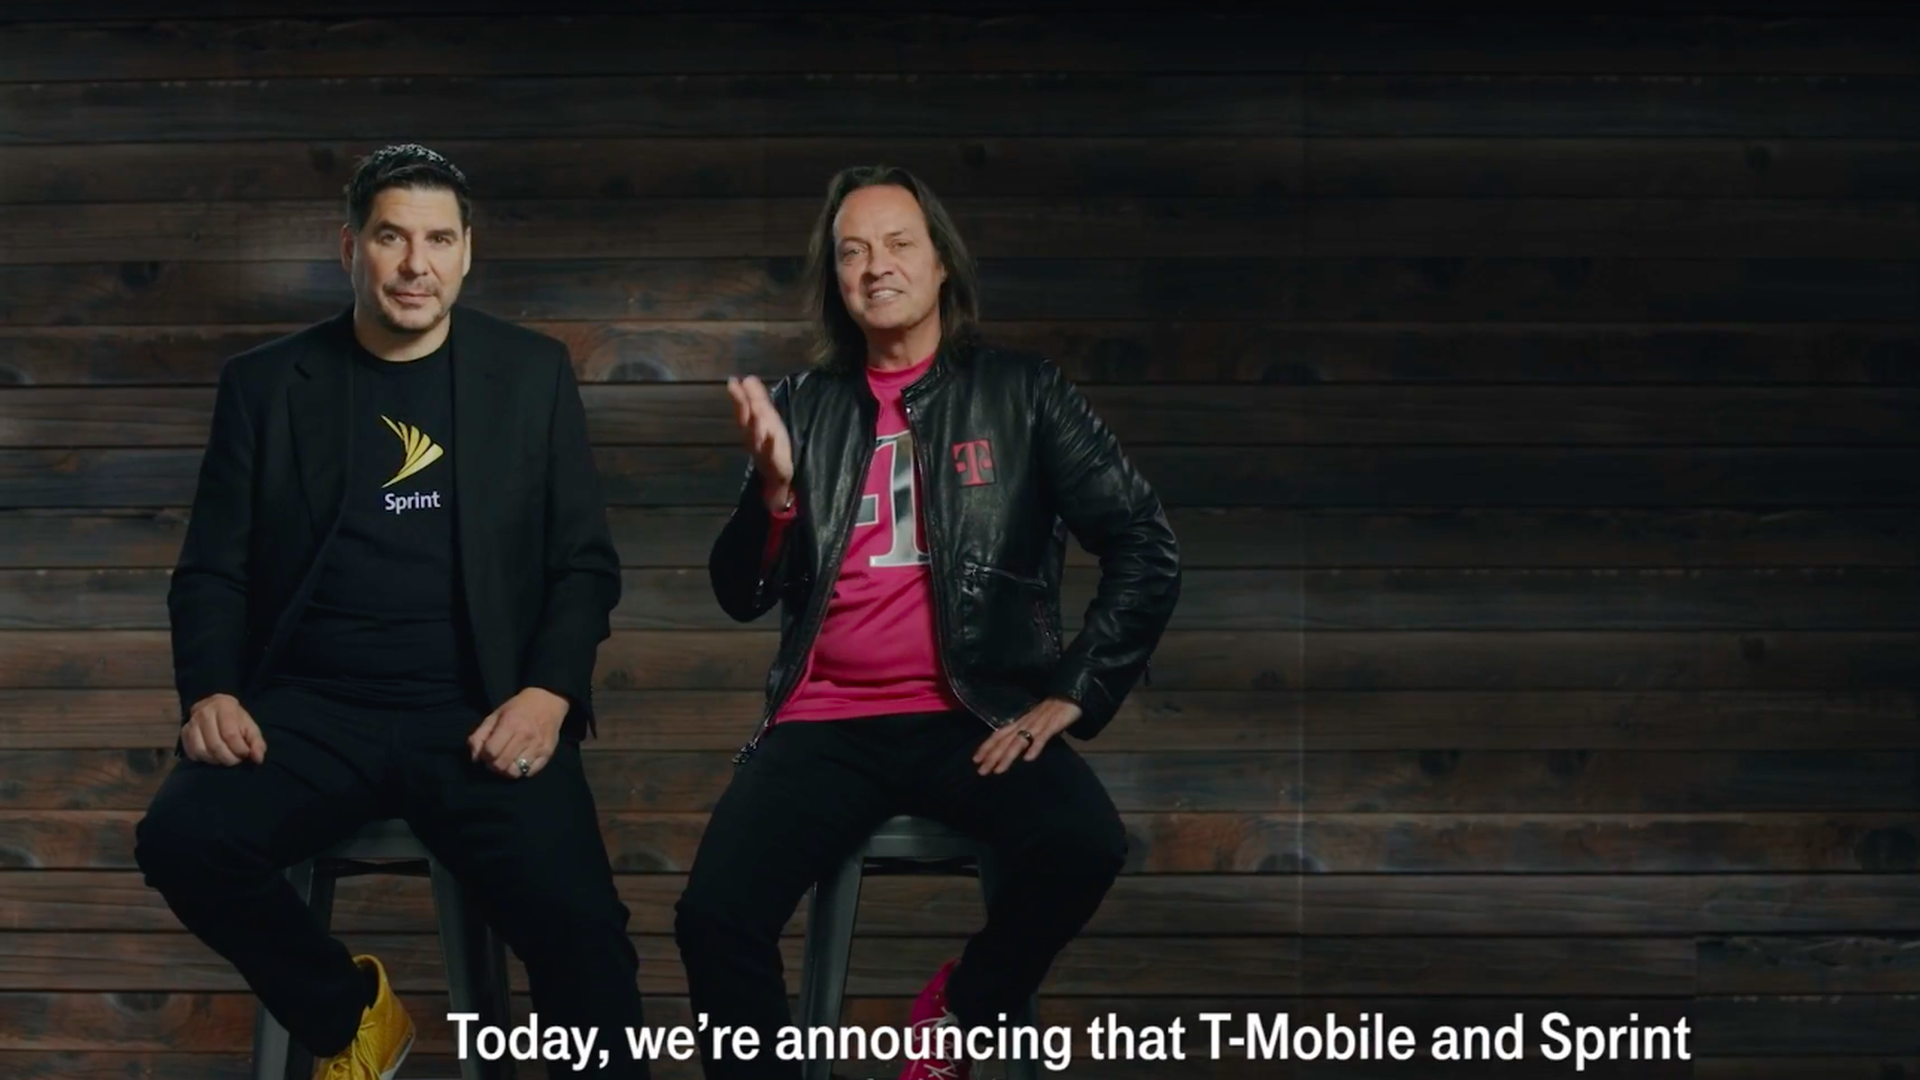 Sprint CEO Marcelo Claure and T-Mobile chief executive John Legere sit on high stools